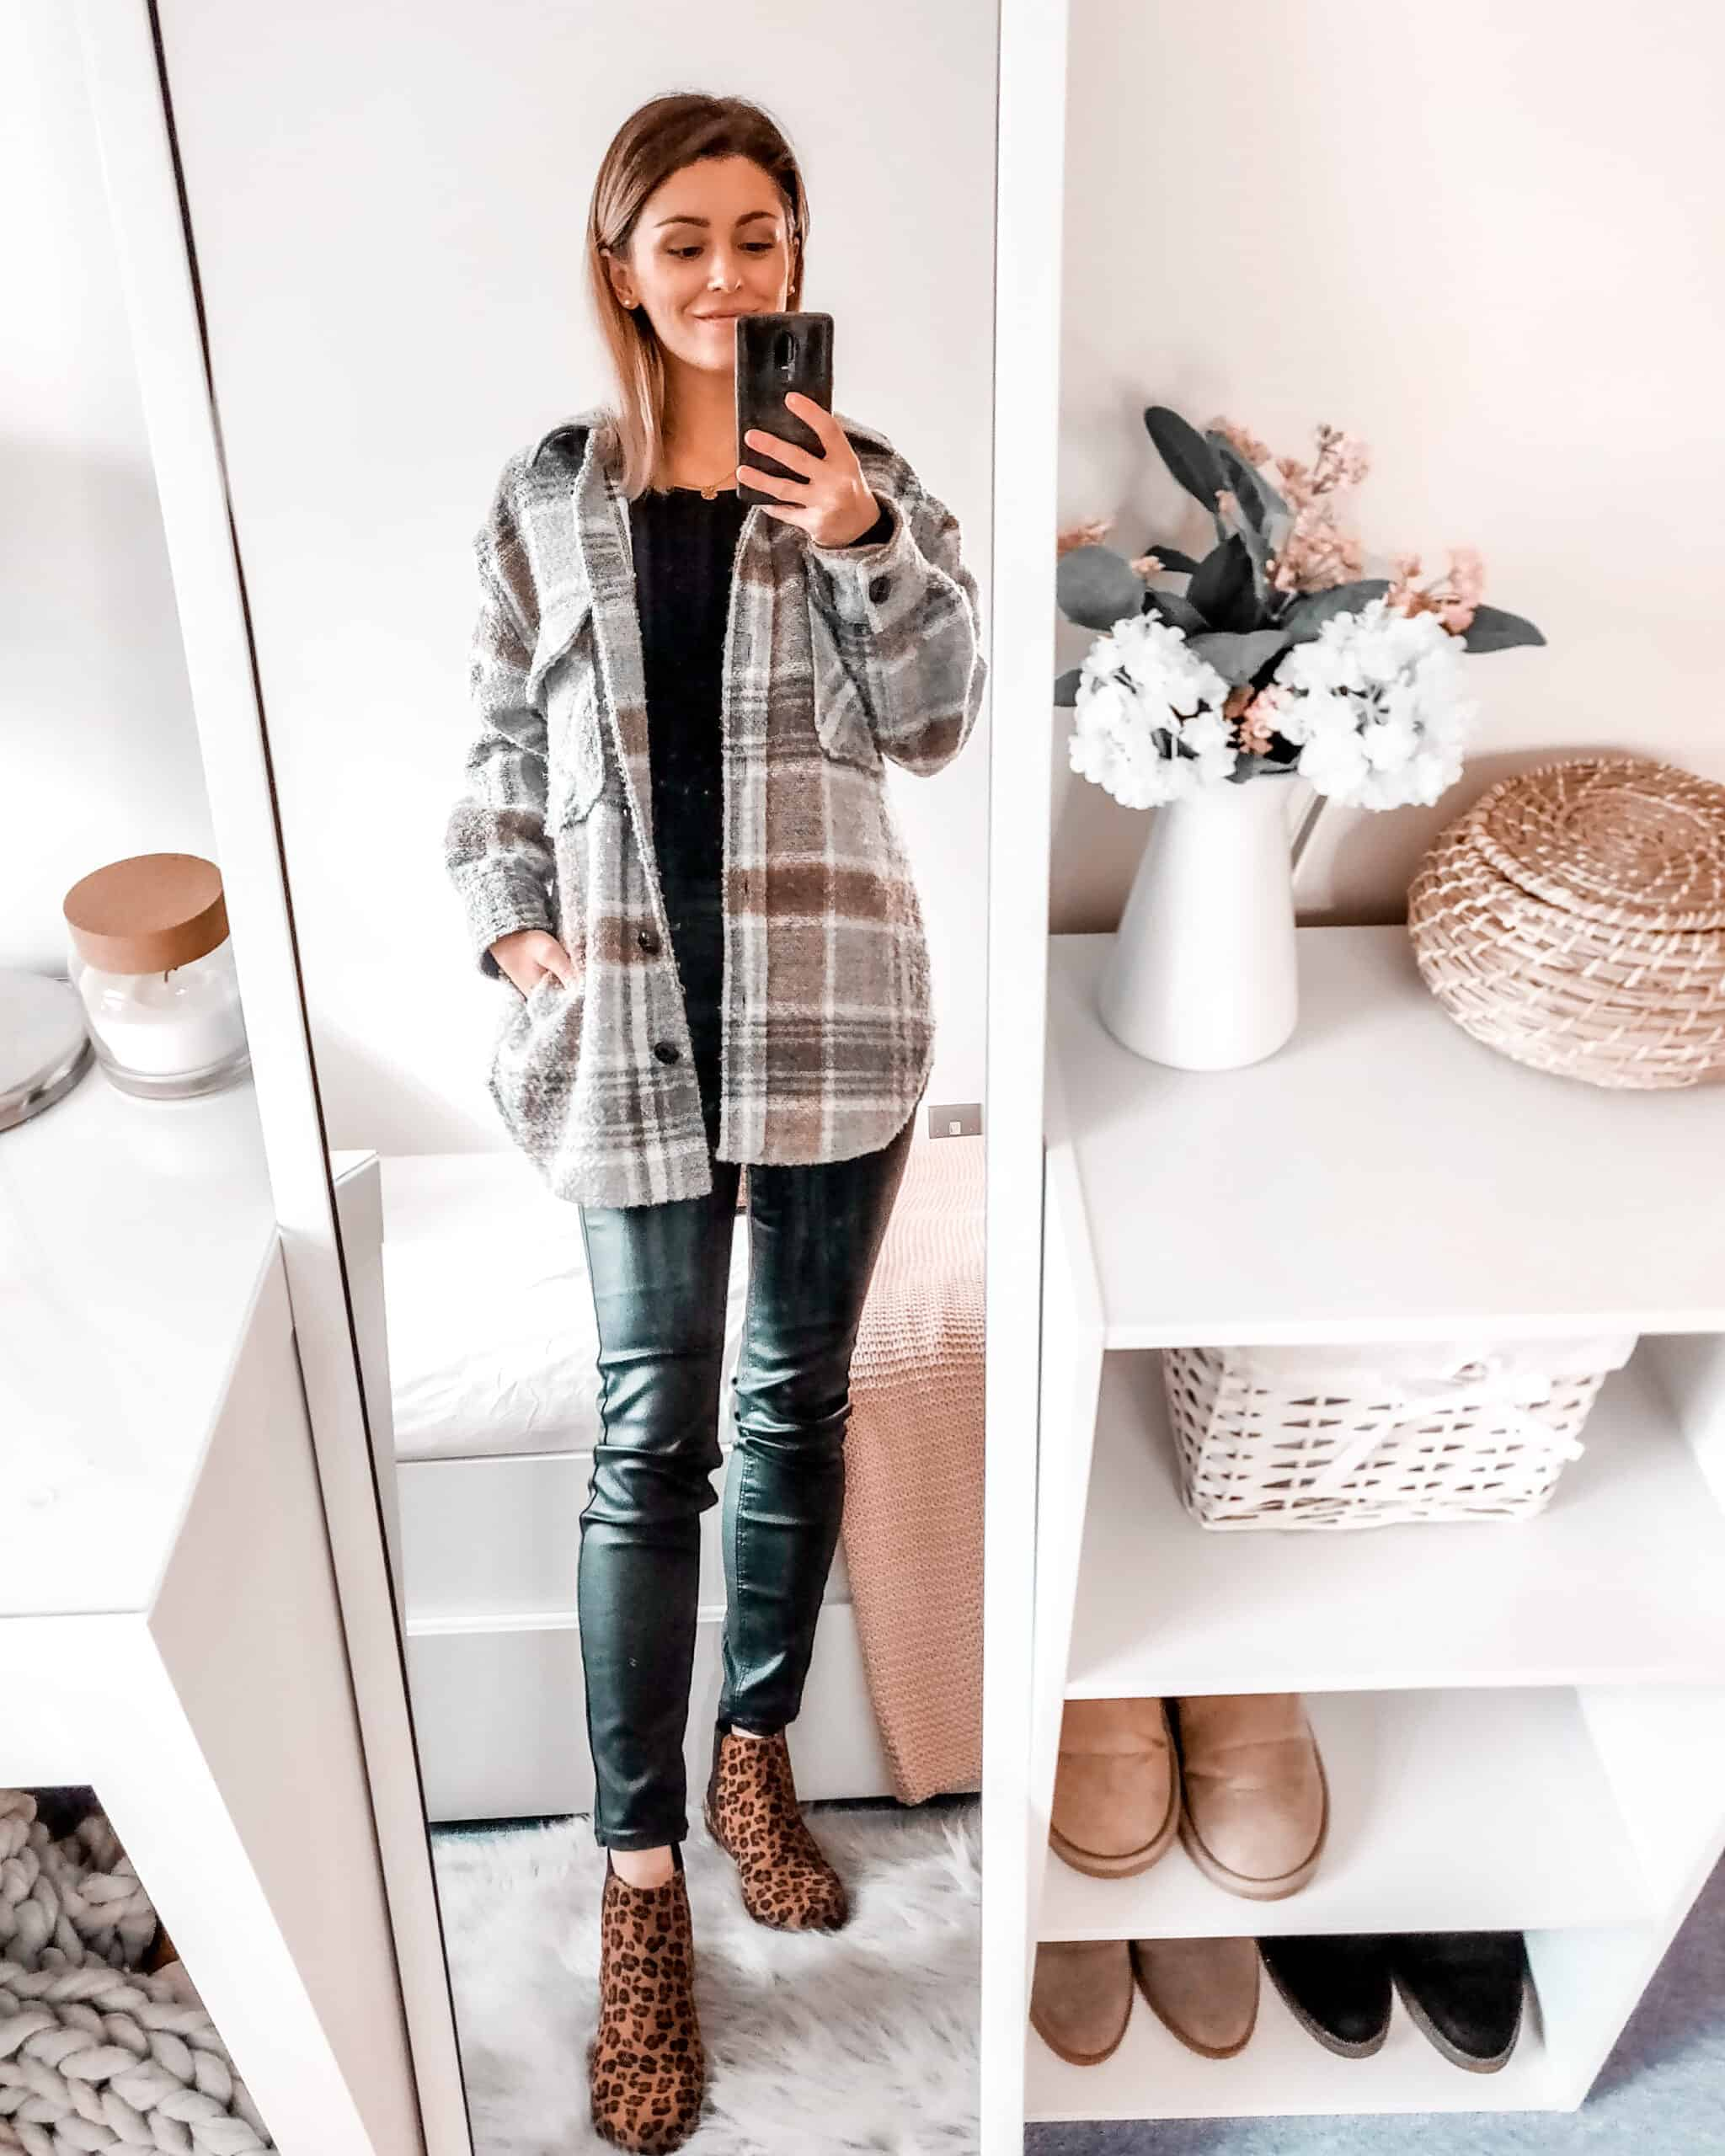 Primark check jacket with all black outfit and leopard print boots